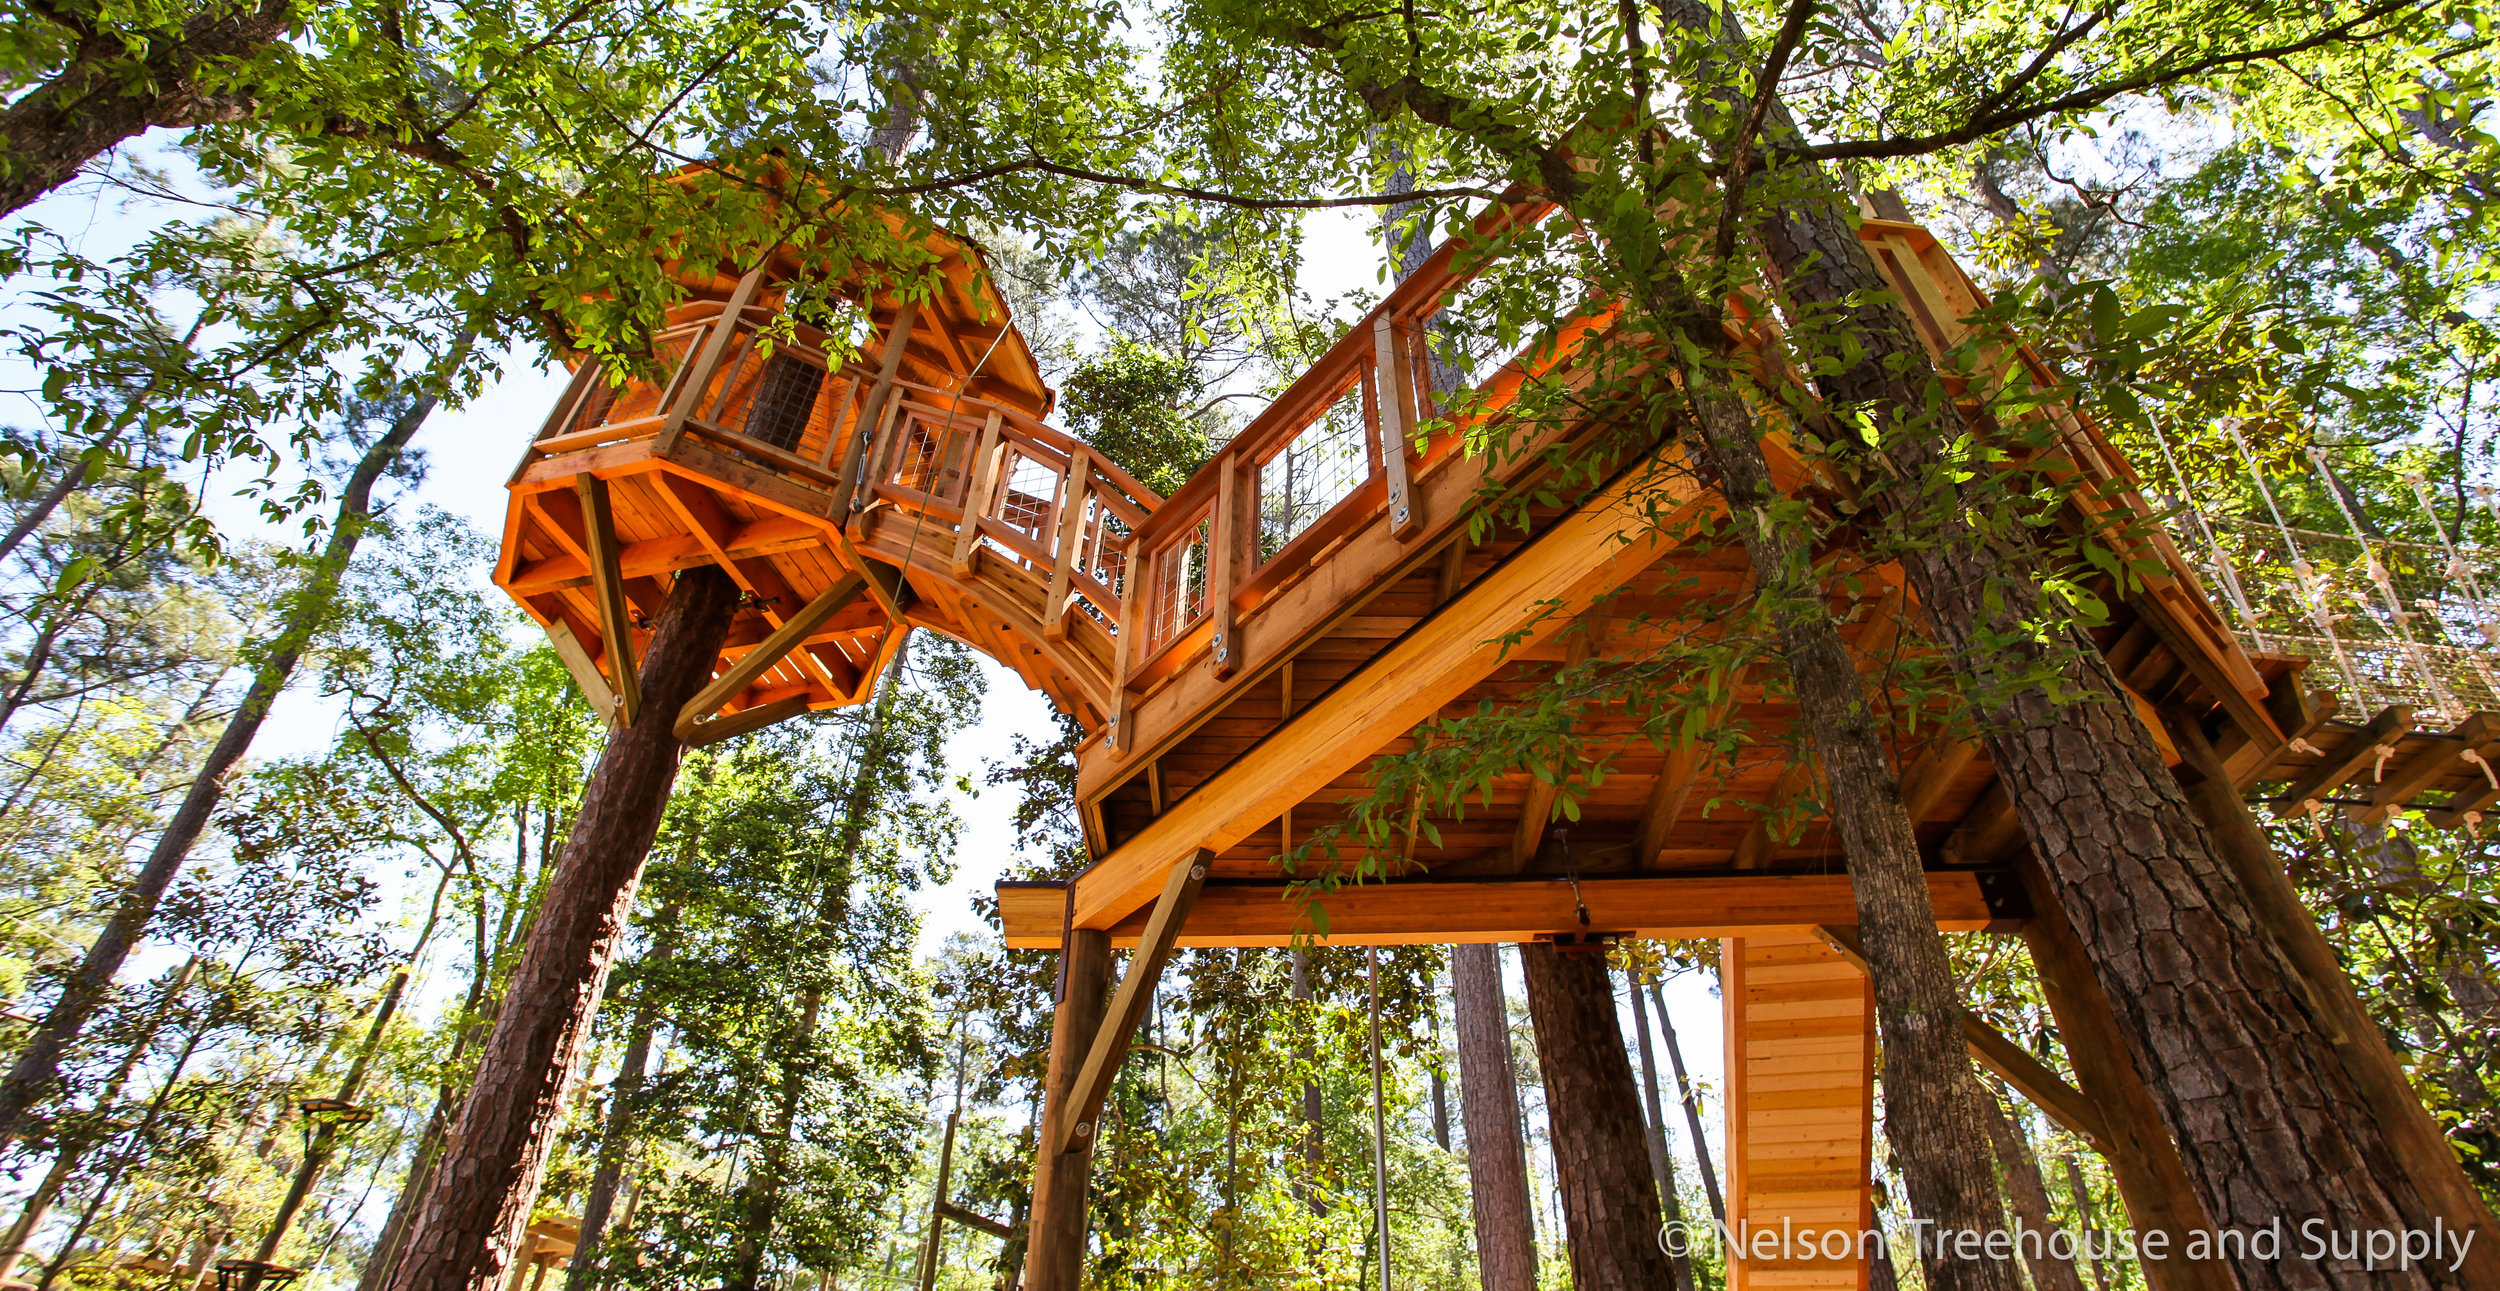 Daryl recently worked on this adventurous treehouse for Camp Cho-Yeh.